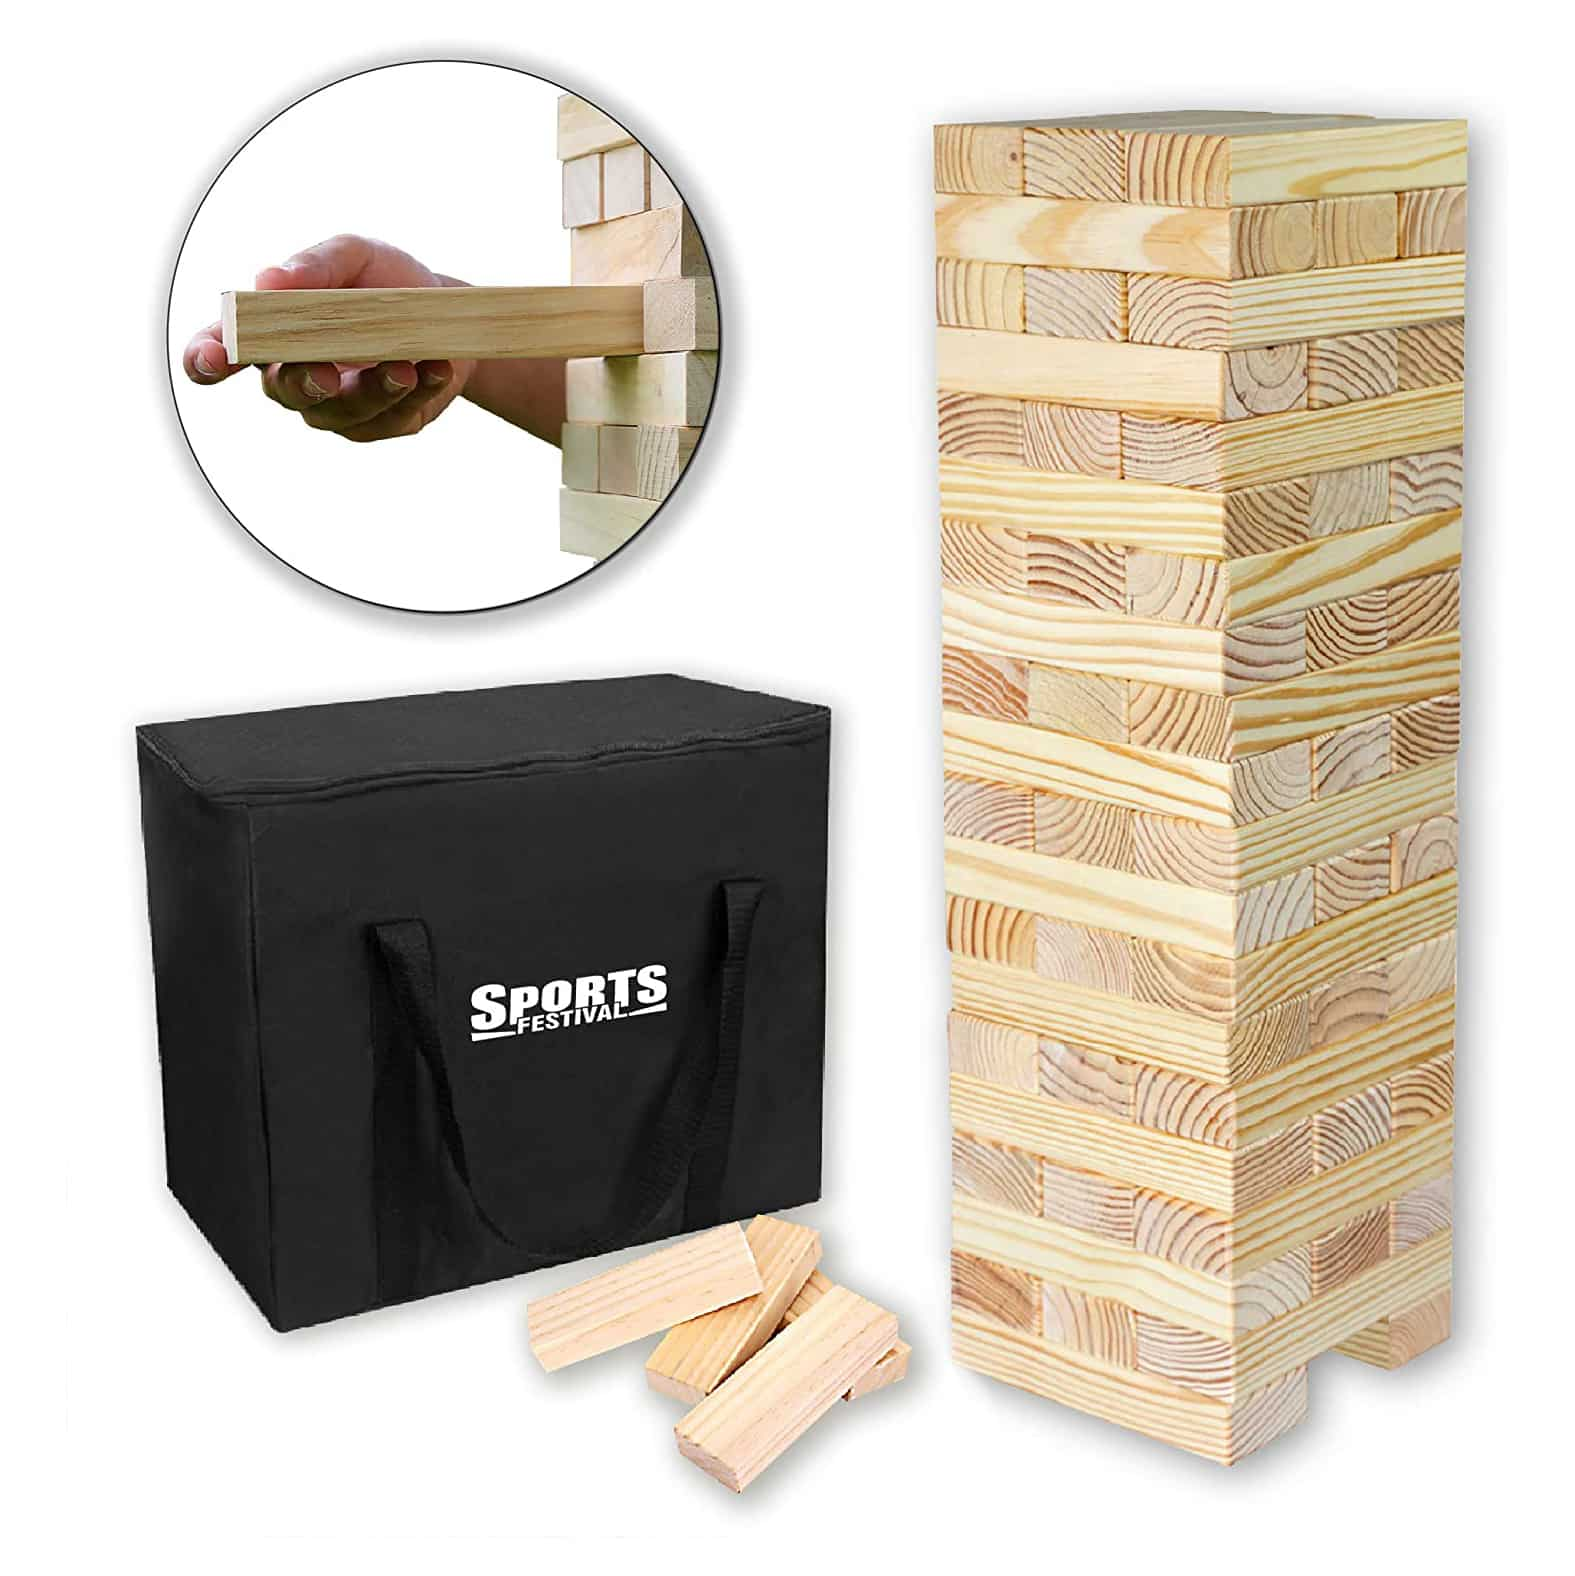 Sports Festival Giant Wooden Tumbling Timbers with Storage Bag